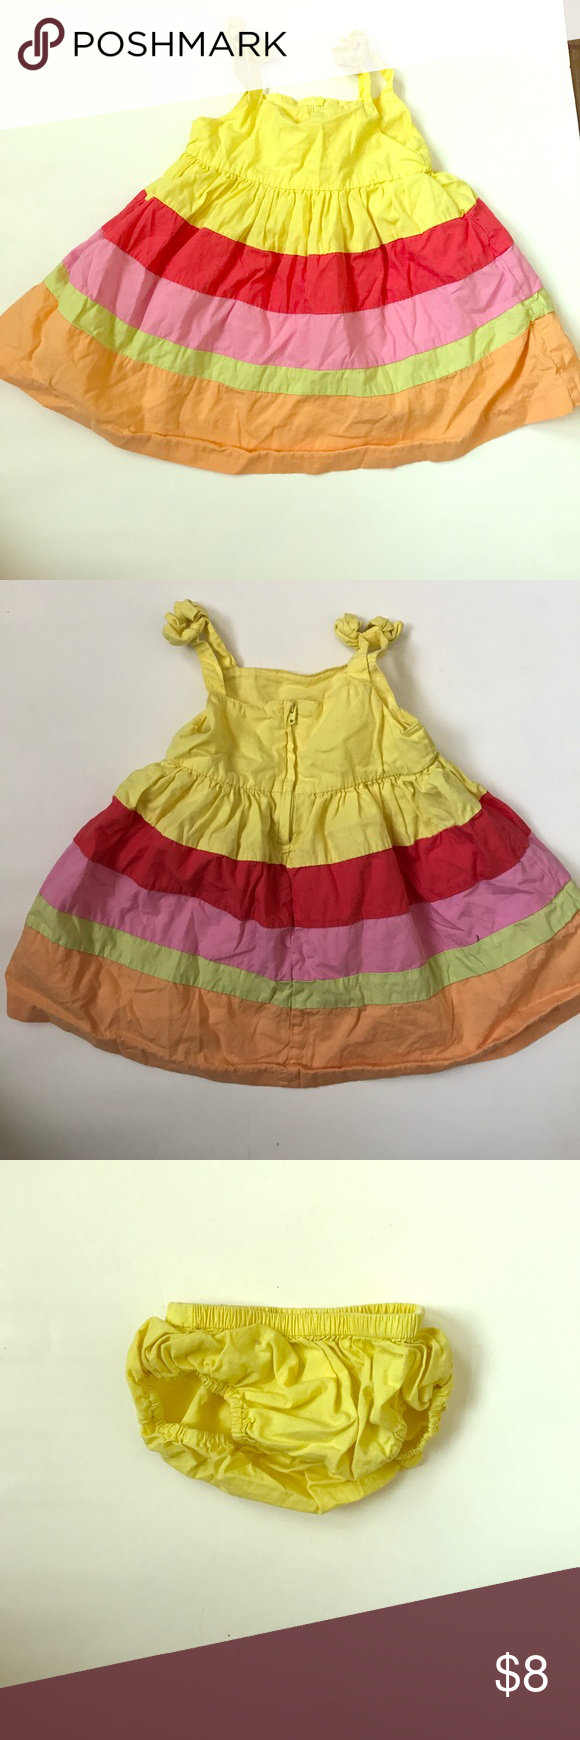 Yellow dress 3-6 months  Gymboree Colorful Dress in  months  Gymboree Dress casual and